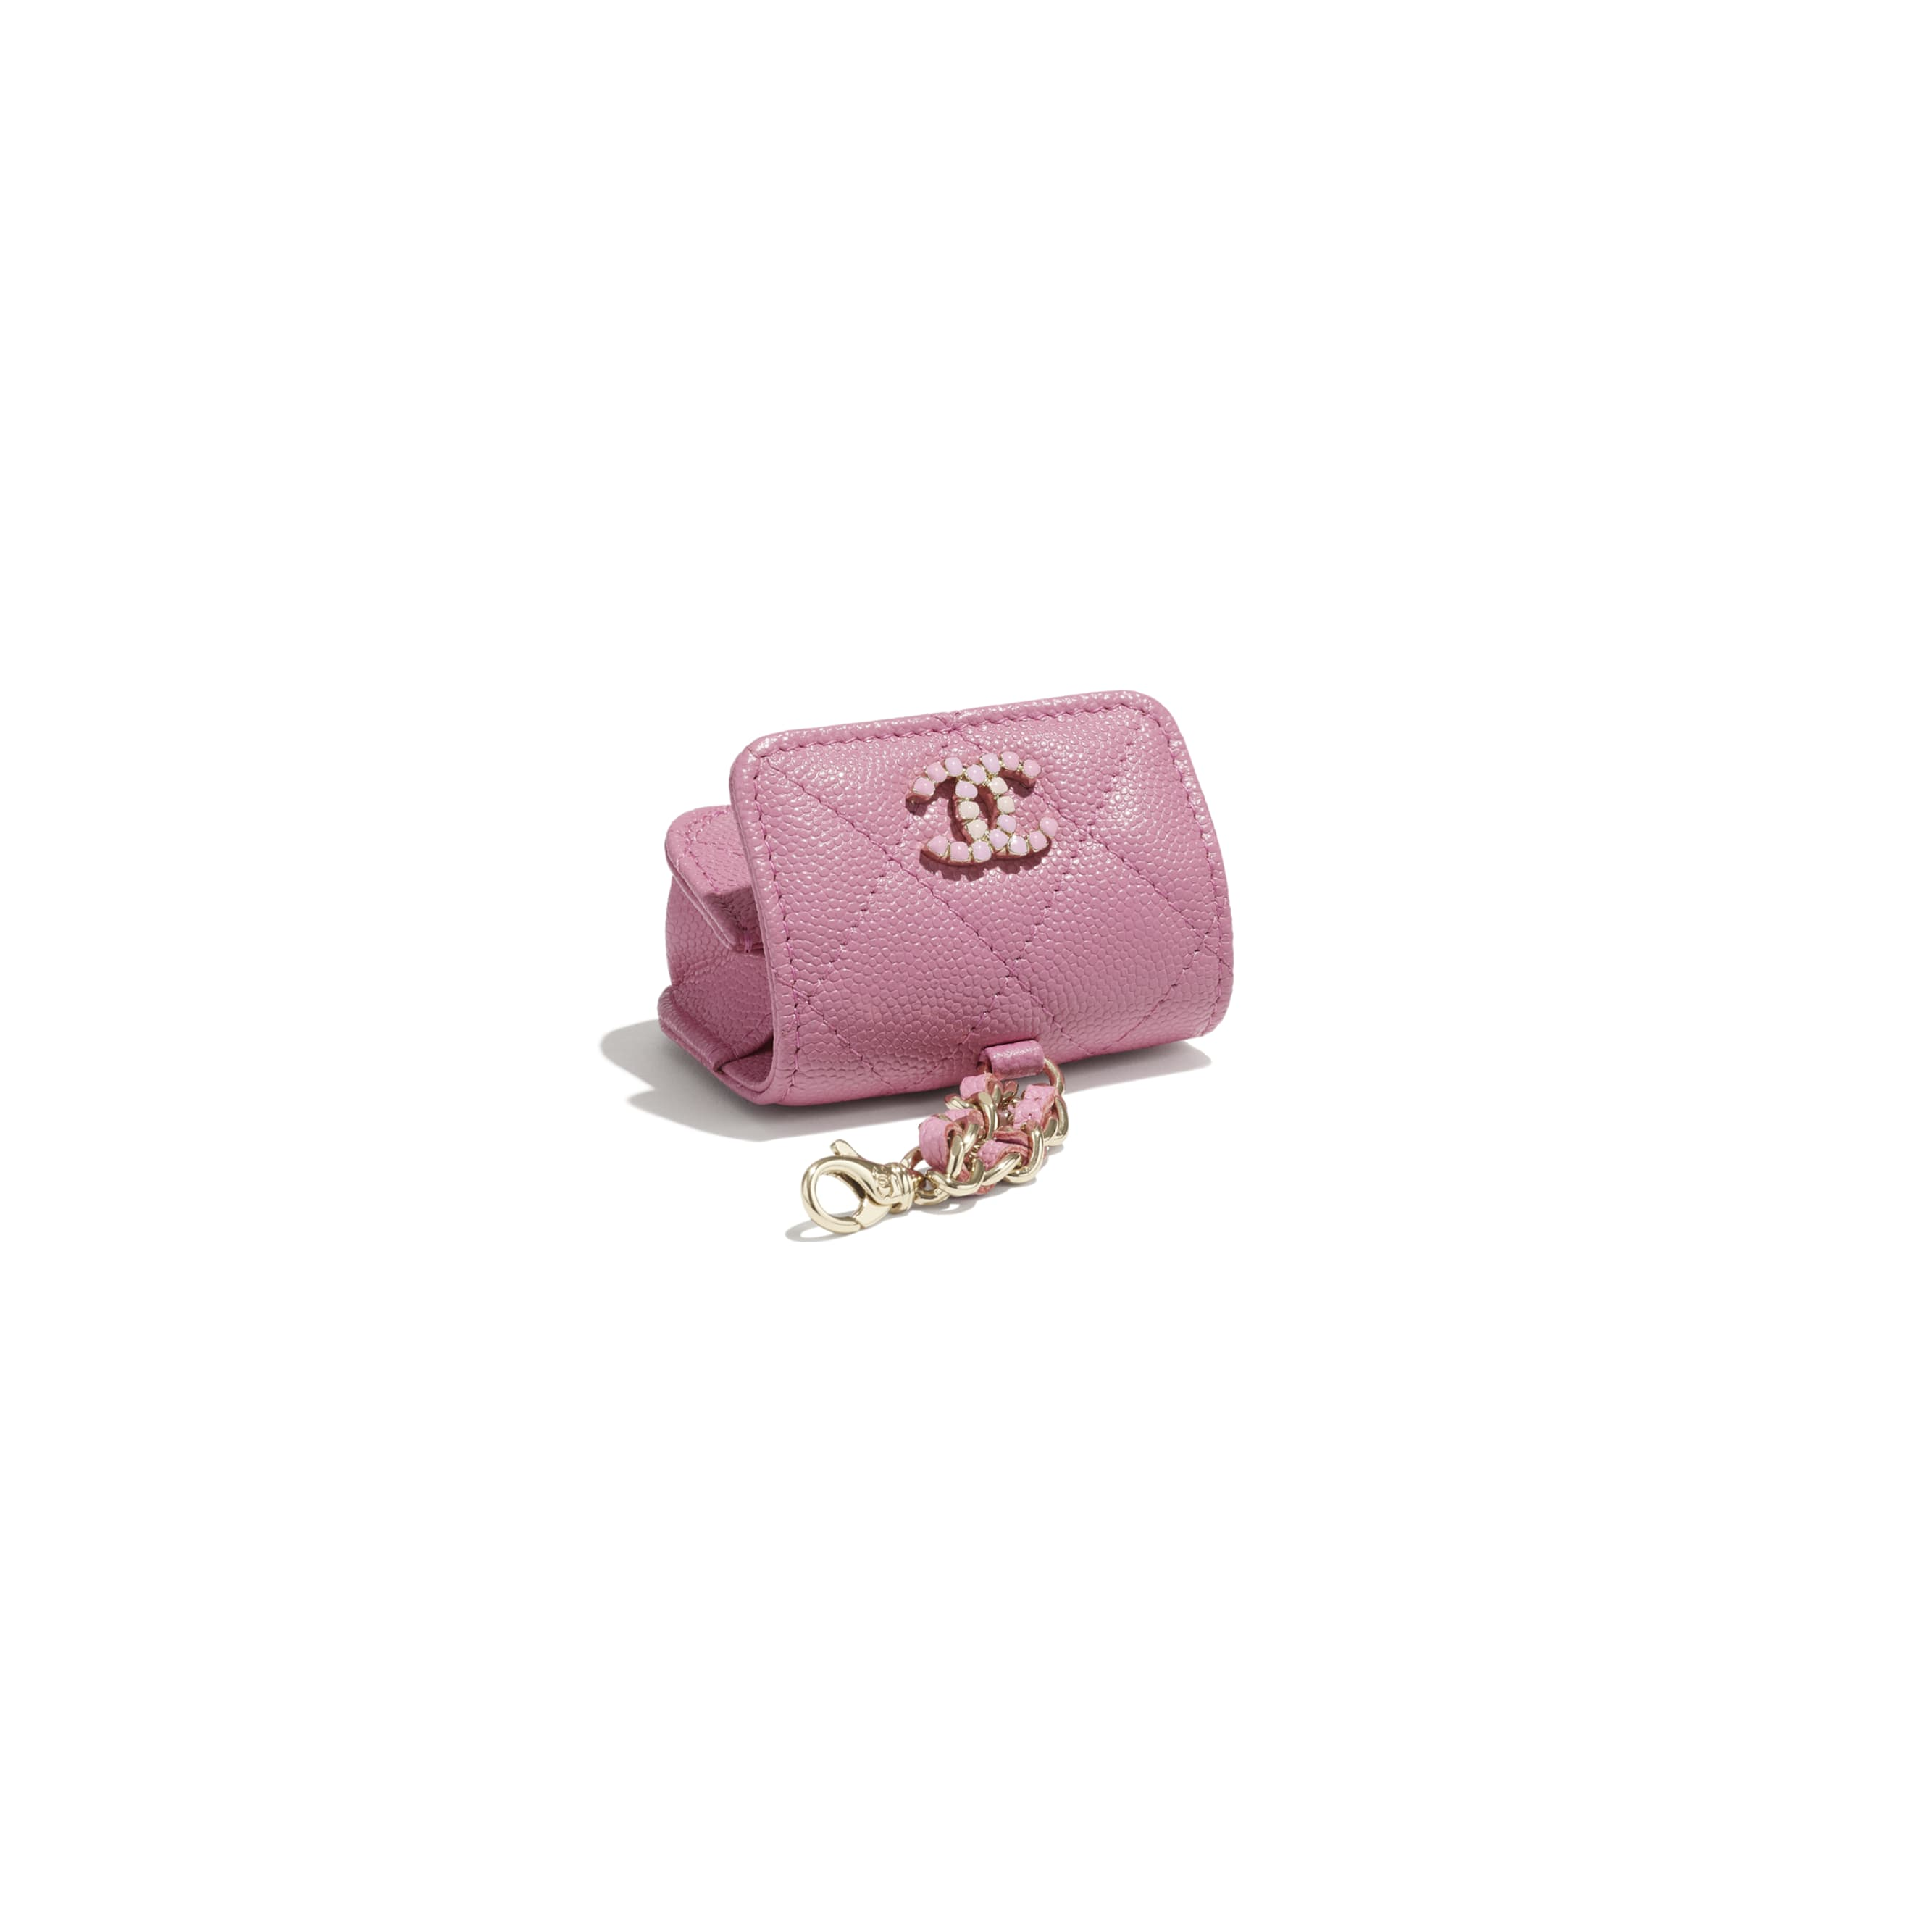 AirPods Pro Case - Pink - Grained Calfskin & Laquered Gold-Tone Metal - CHANEL - Other view - see standard sized version